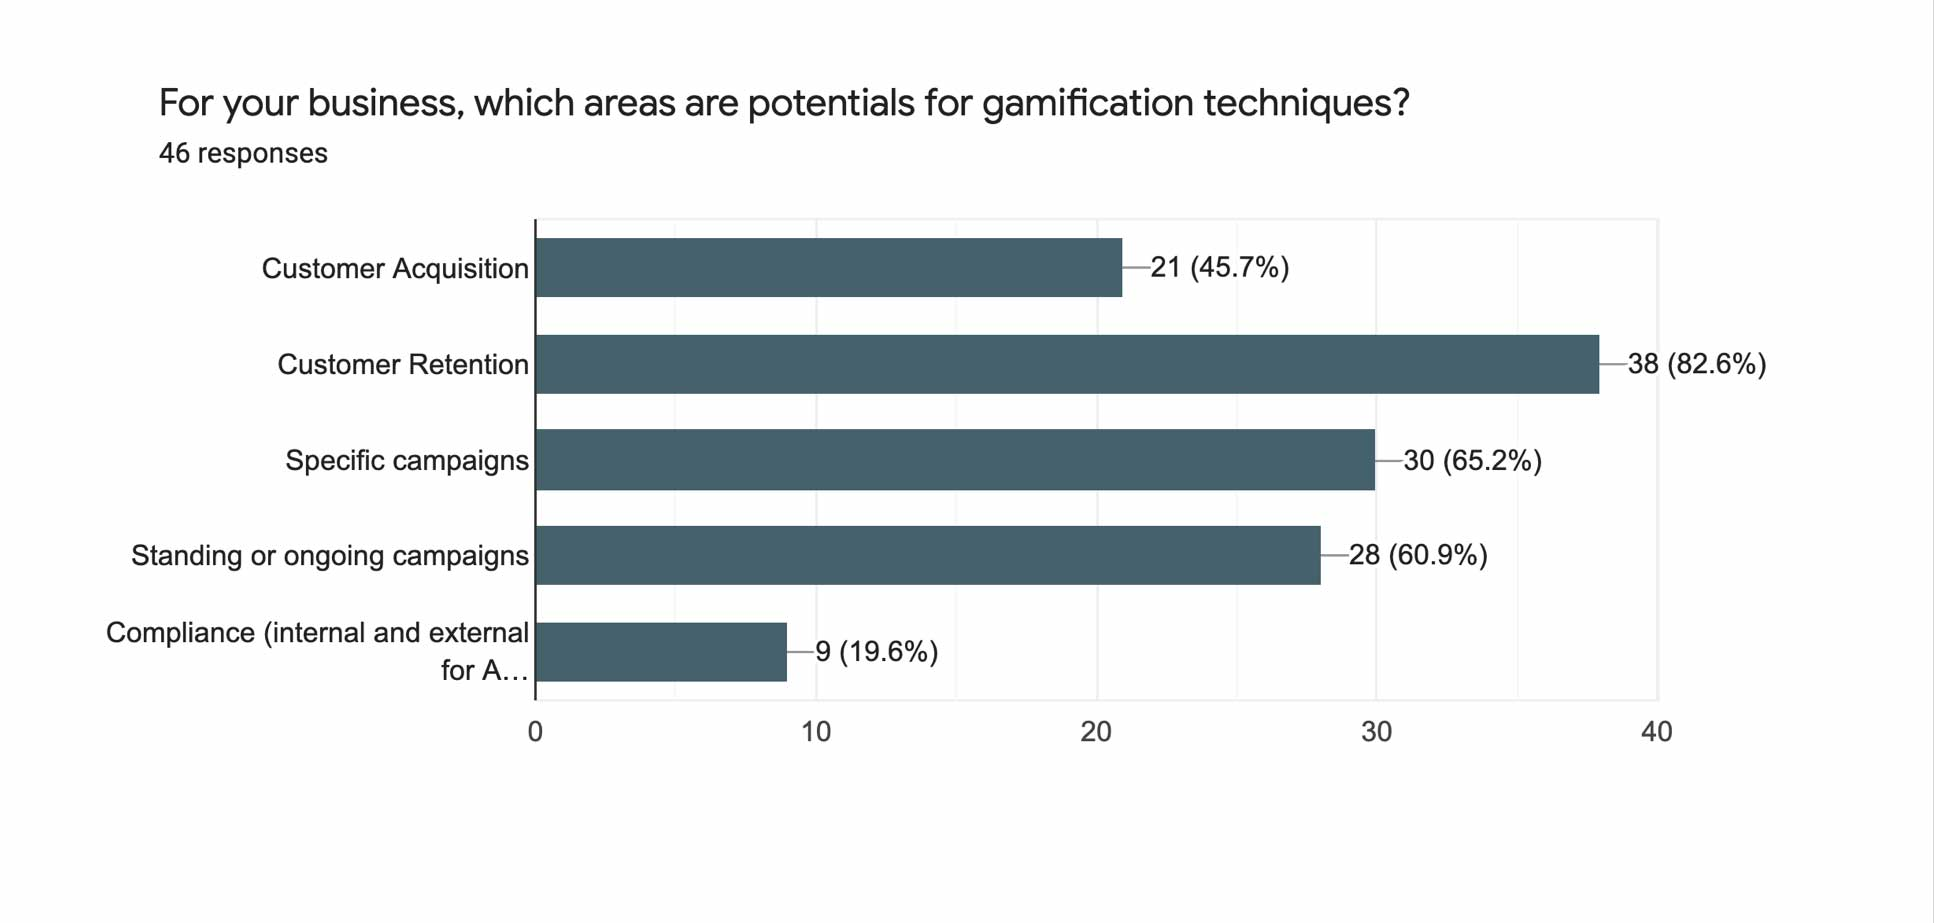 For your business, which areas are potentials for gamification techniques?